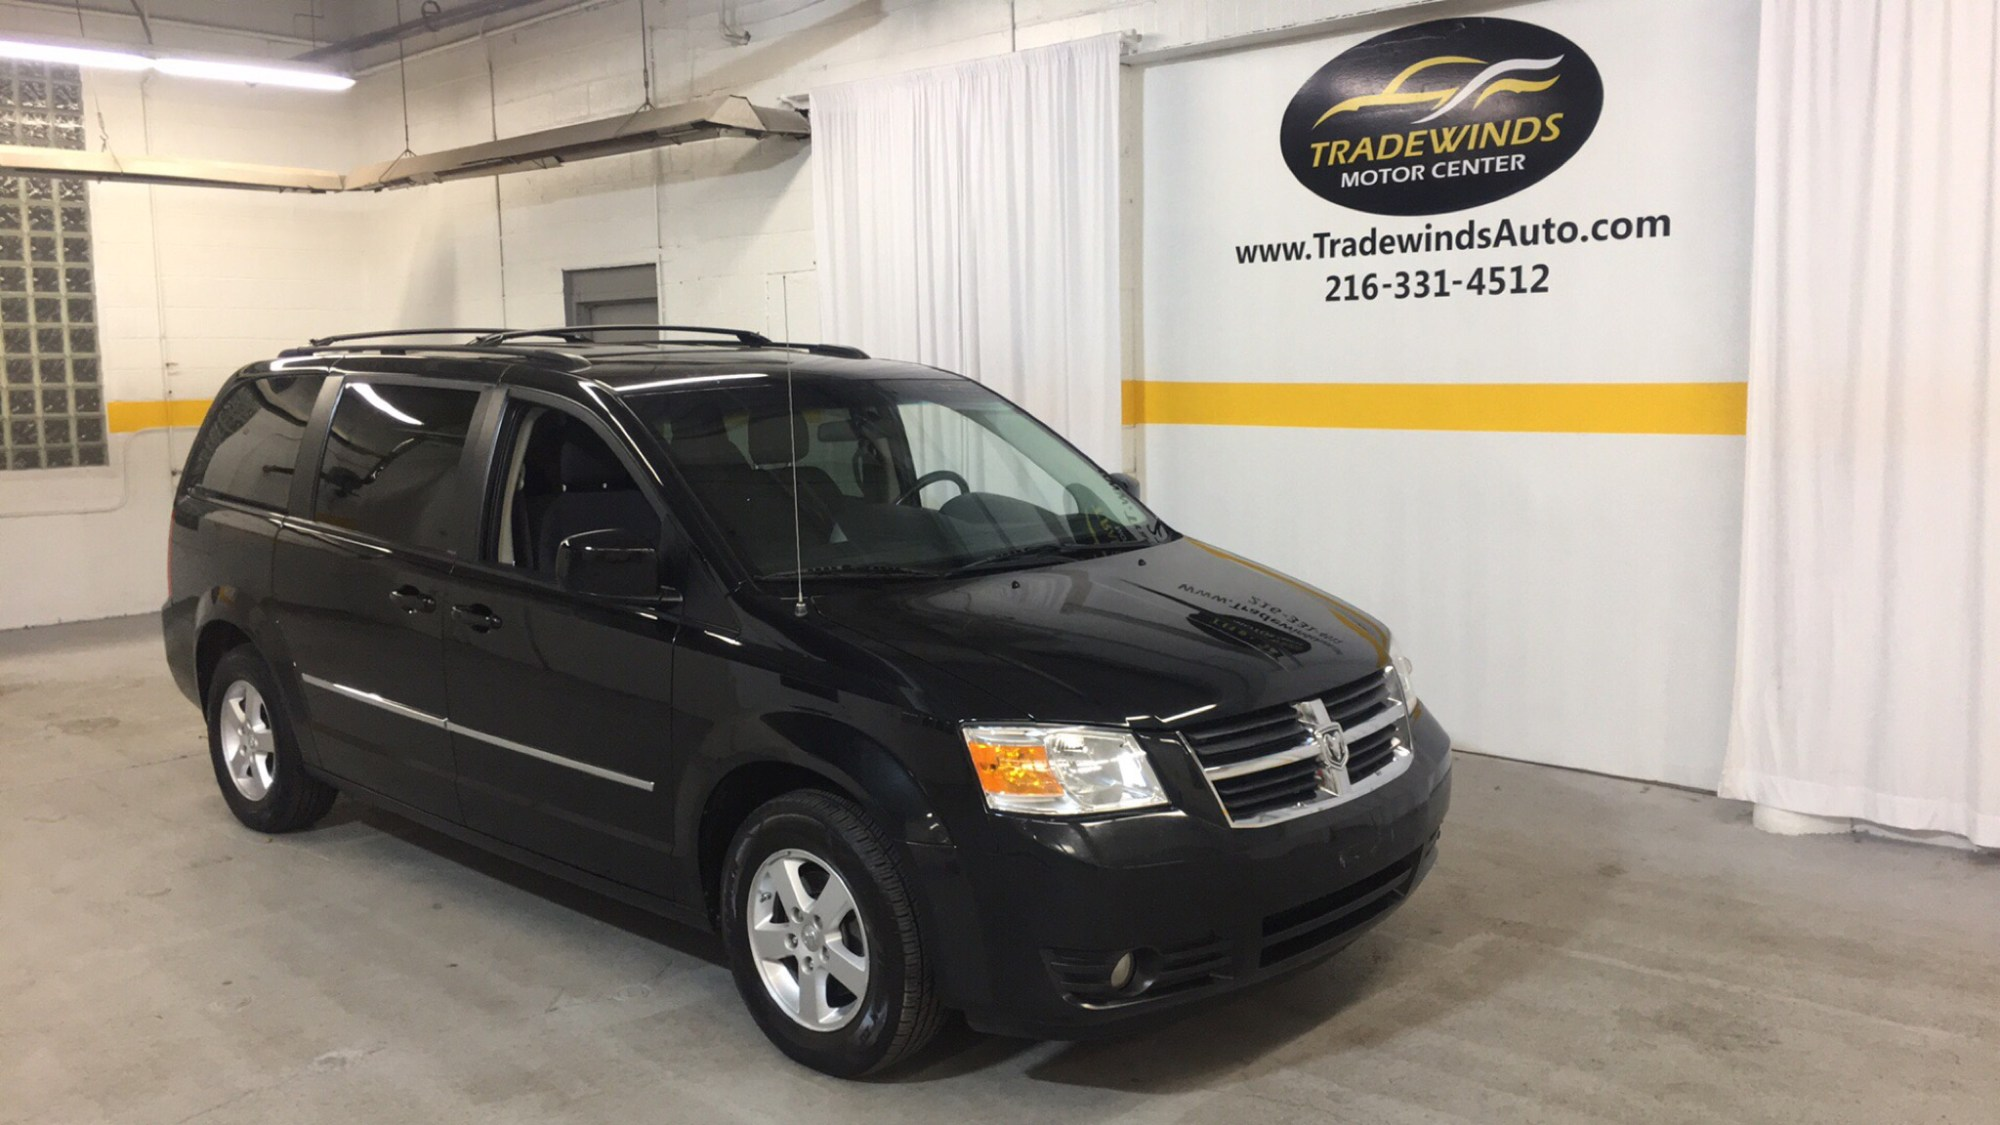 hight resolution of 2010 dodge grand caravan sxt internet price 5 950